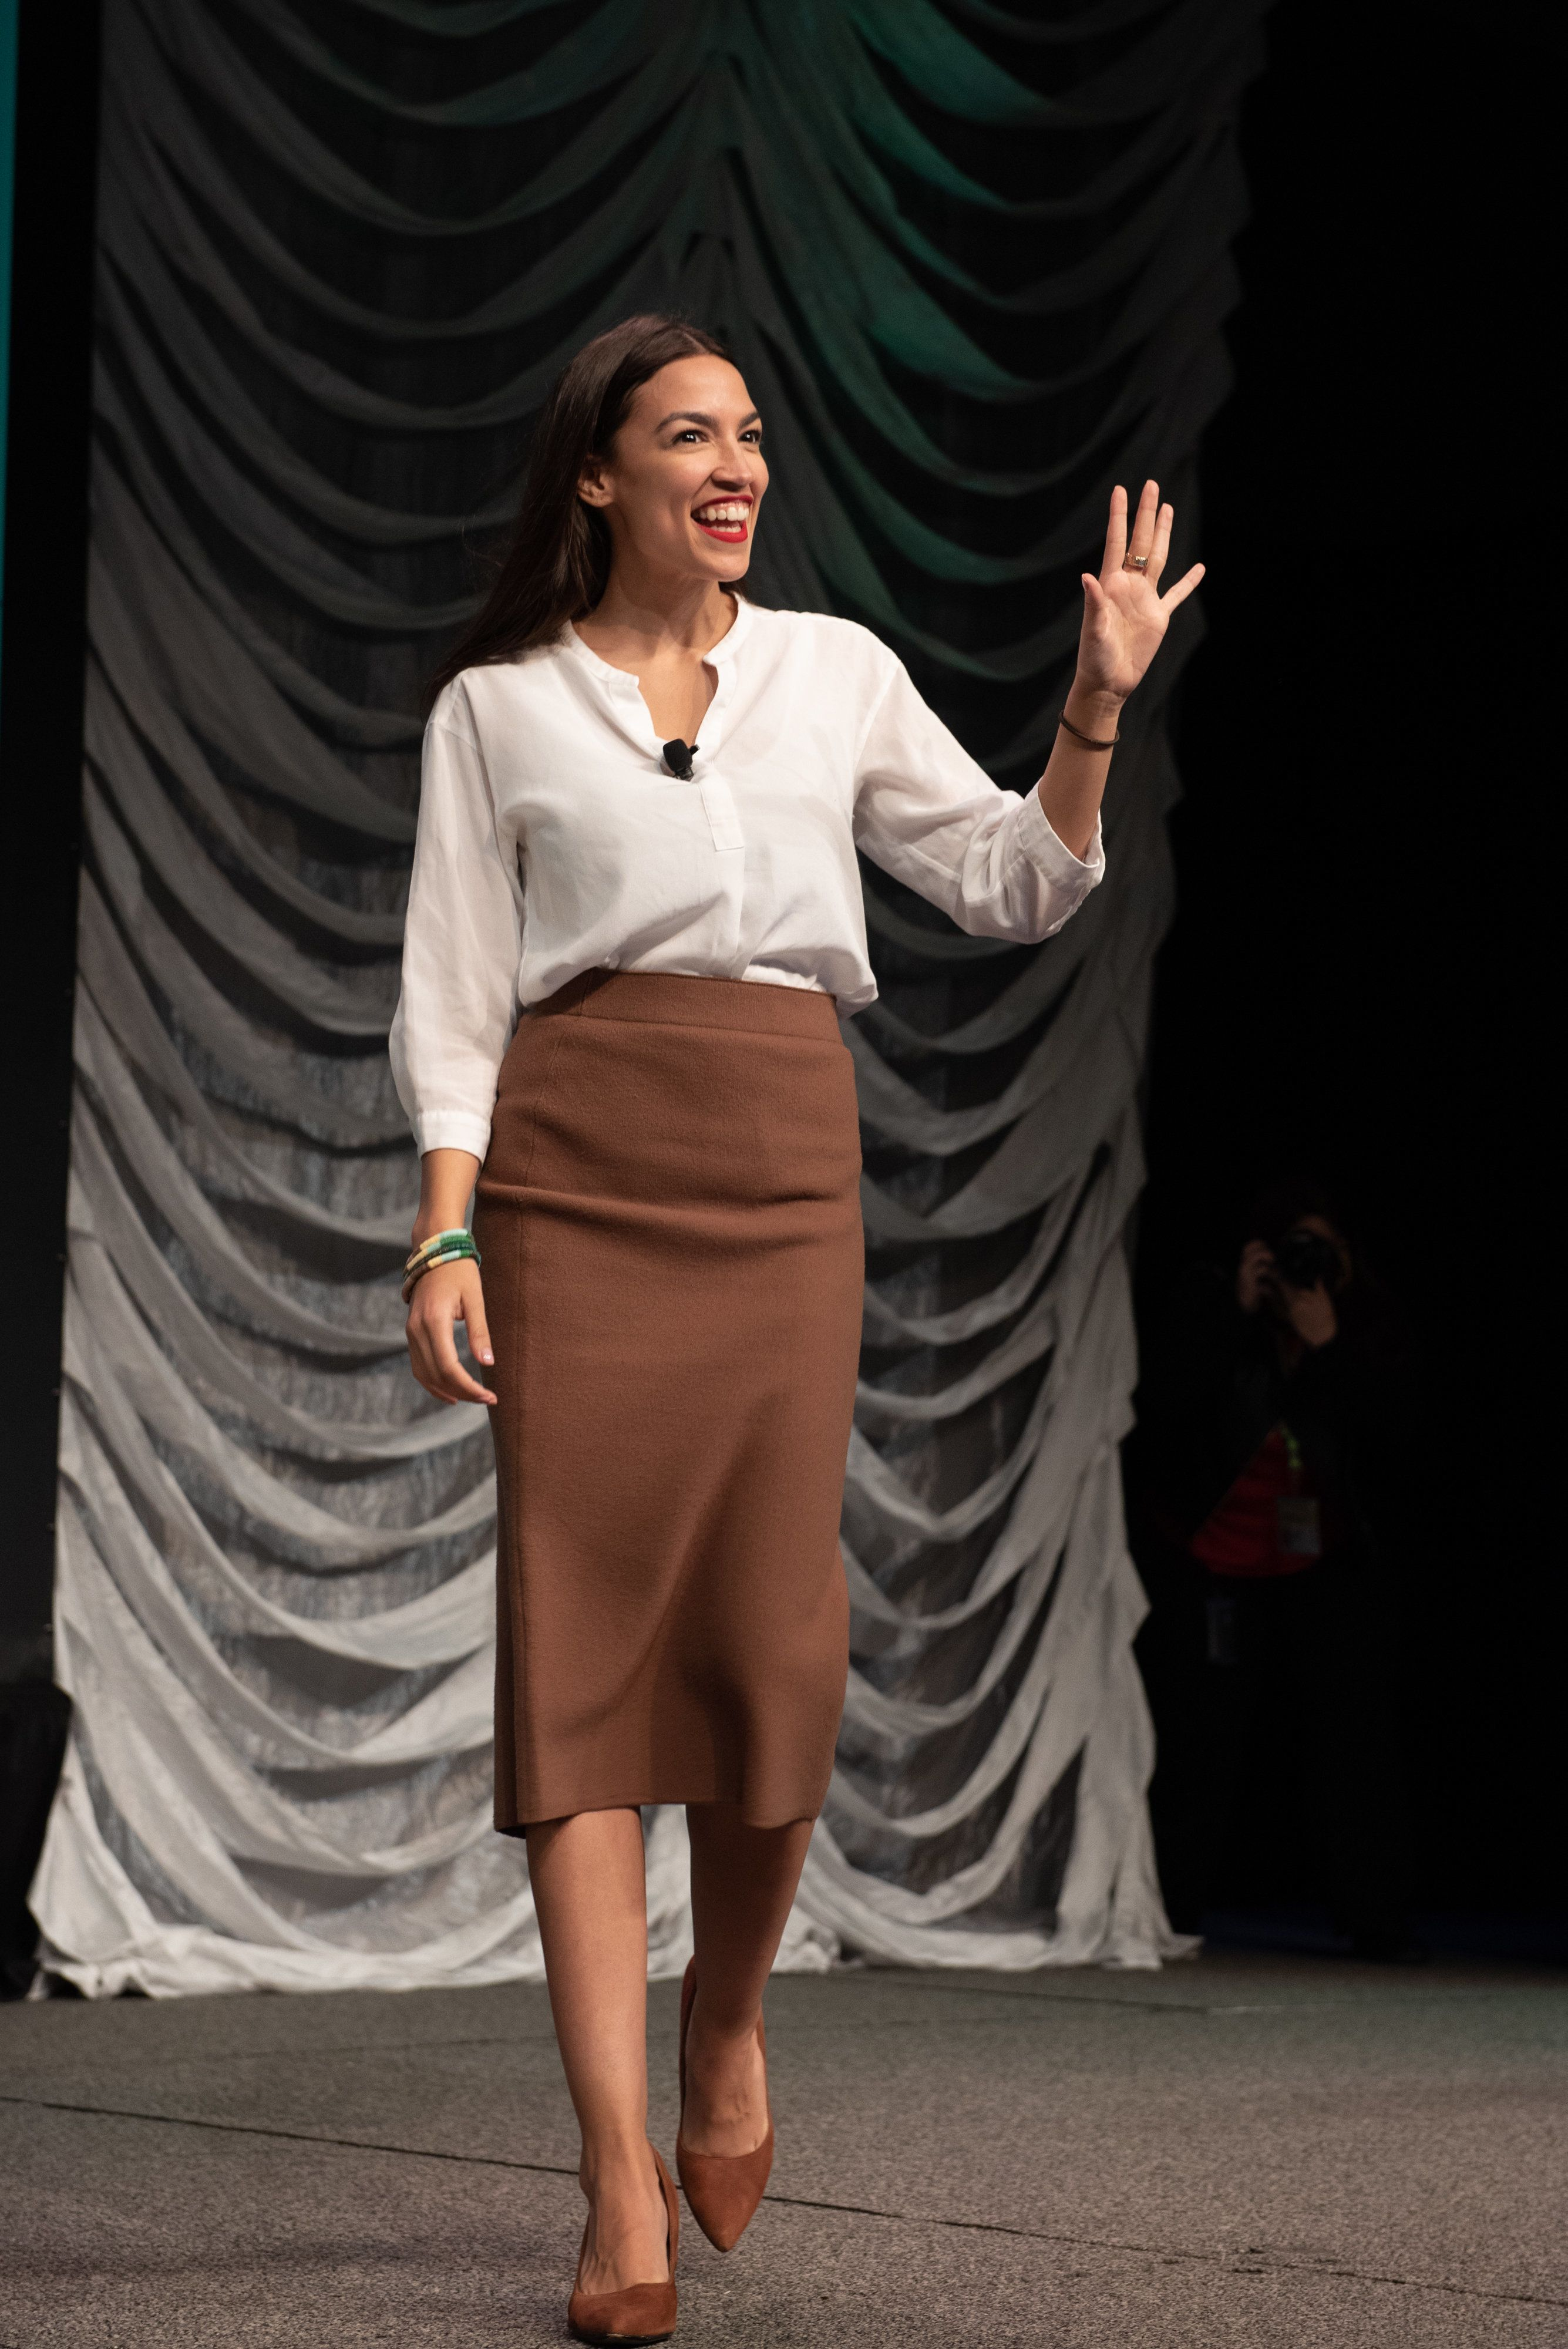 AOC Says Onslaught Of GOP Attacks Are 'Not Gonna Stop This